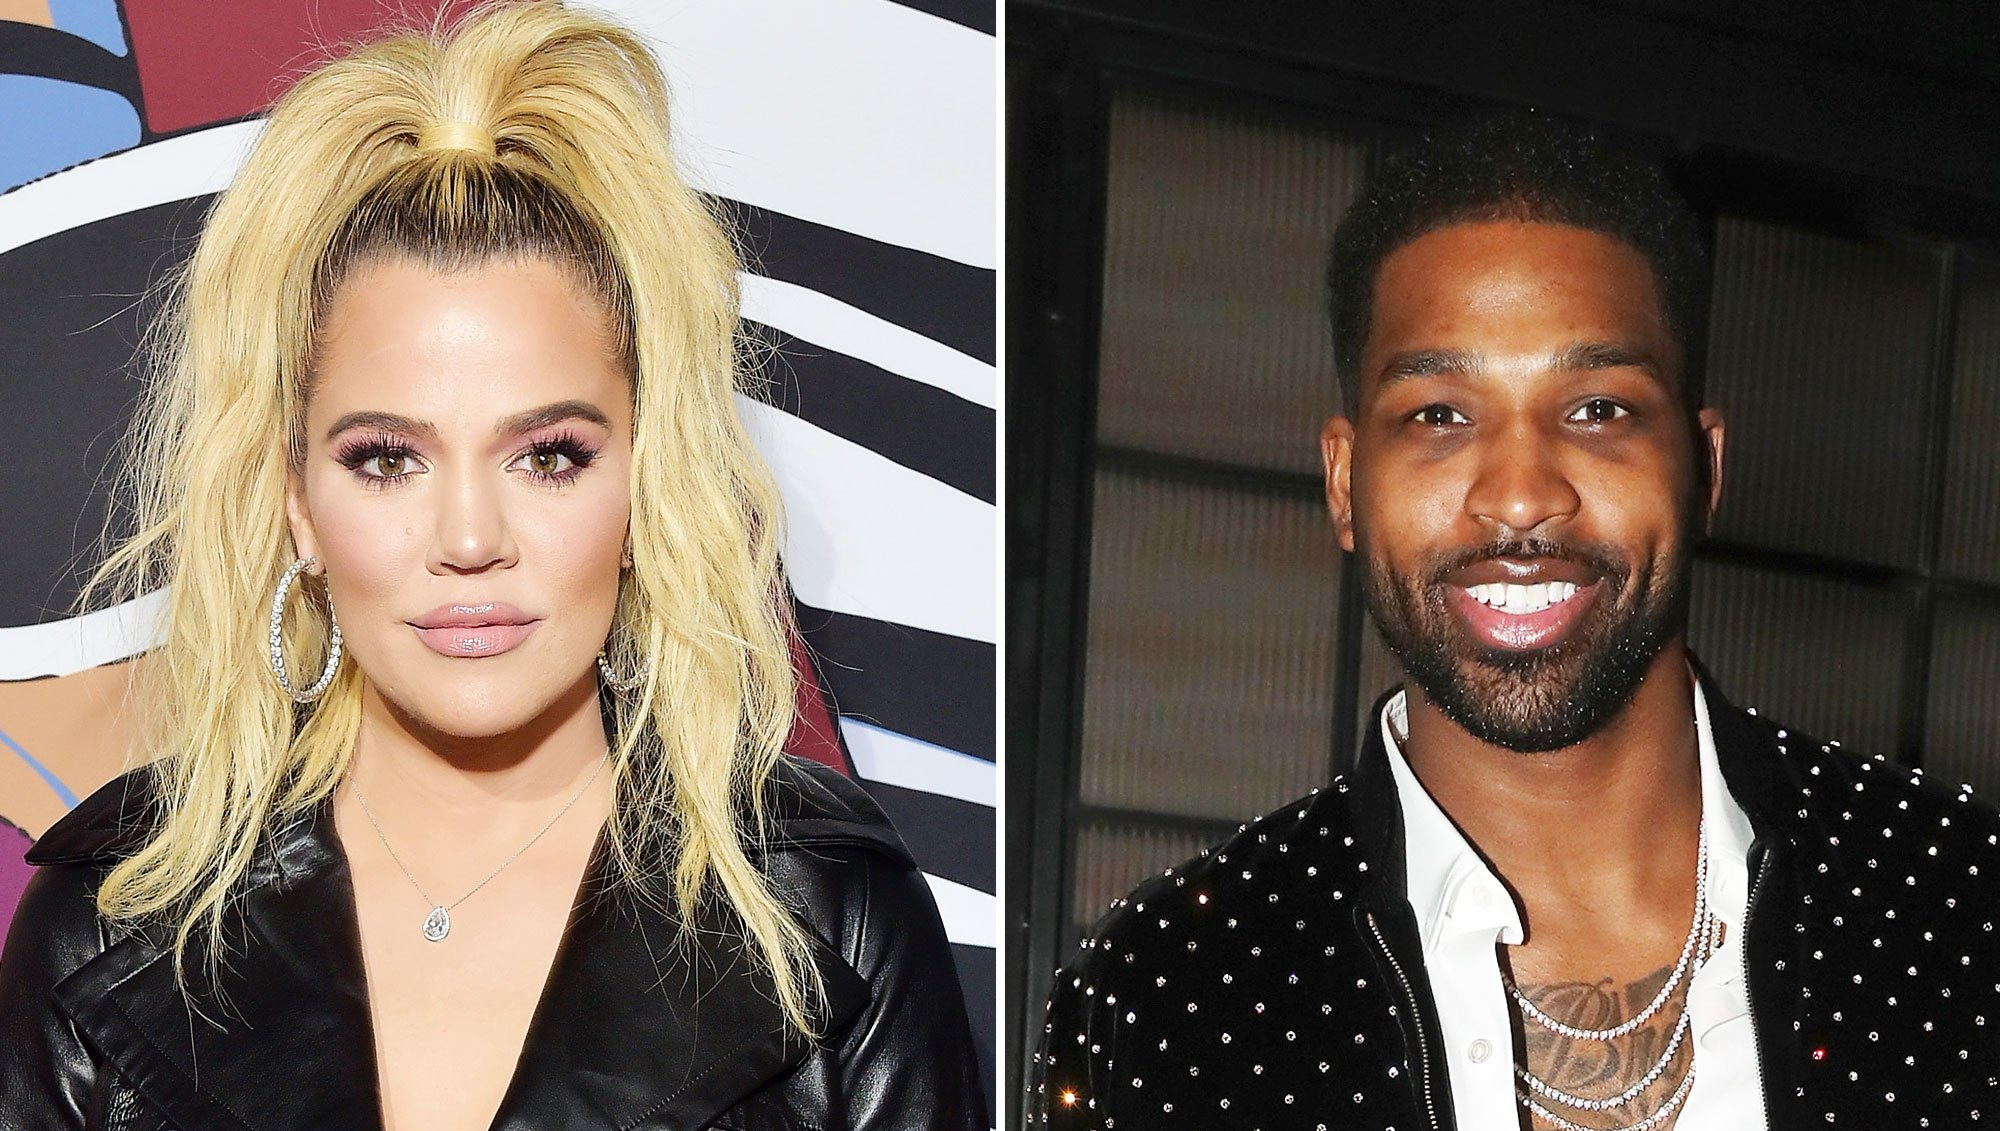 Khloe Kardashian Agrees With Boyfriend Tristan Thompson That Their Daughter True Is His 'Twin'